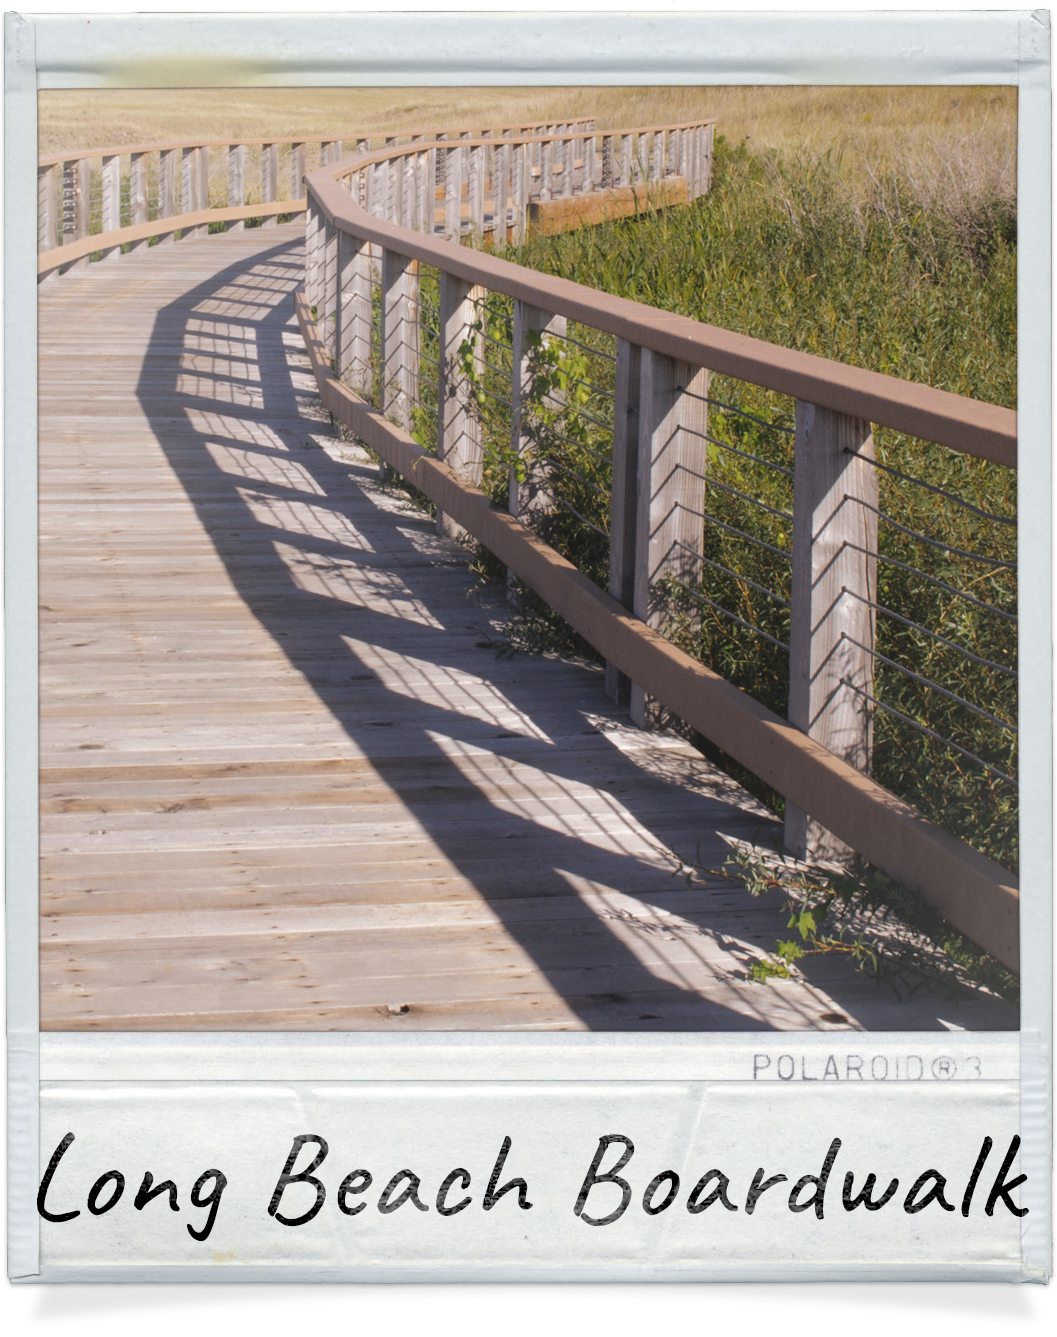 The Long Beach Boardwalk